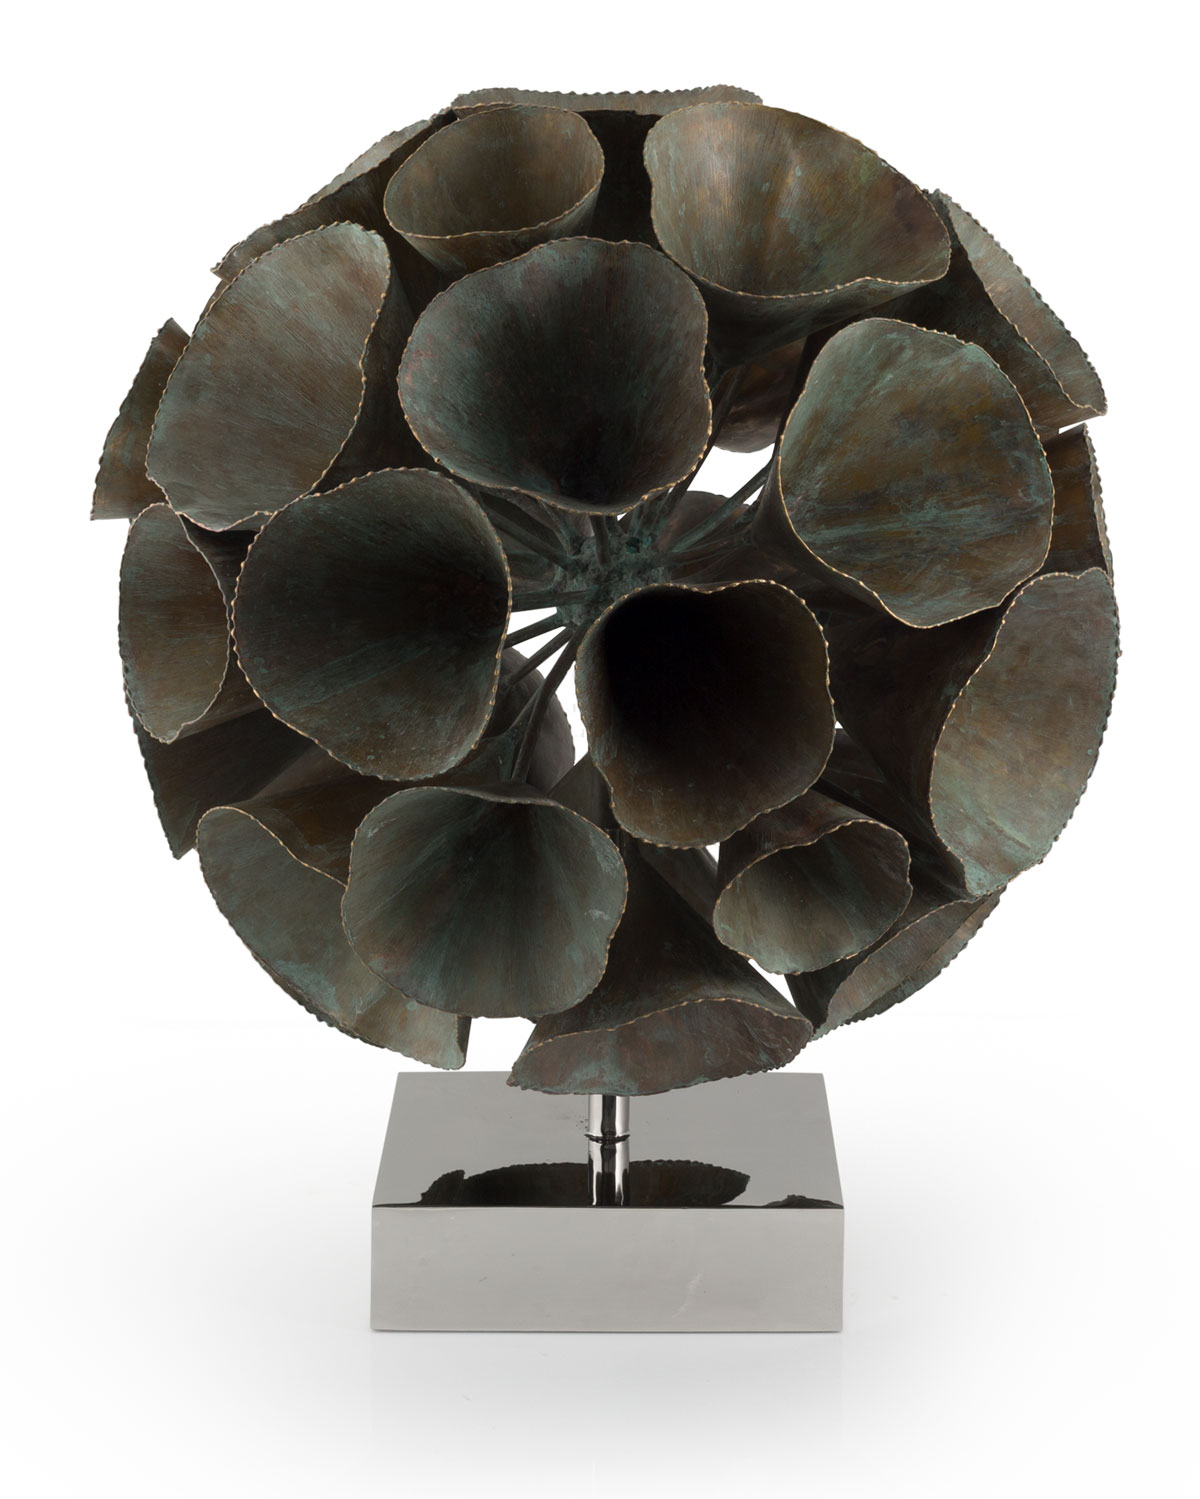 Michael Aram Fantasy Pod Sculpture — Limited Edition of 50